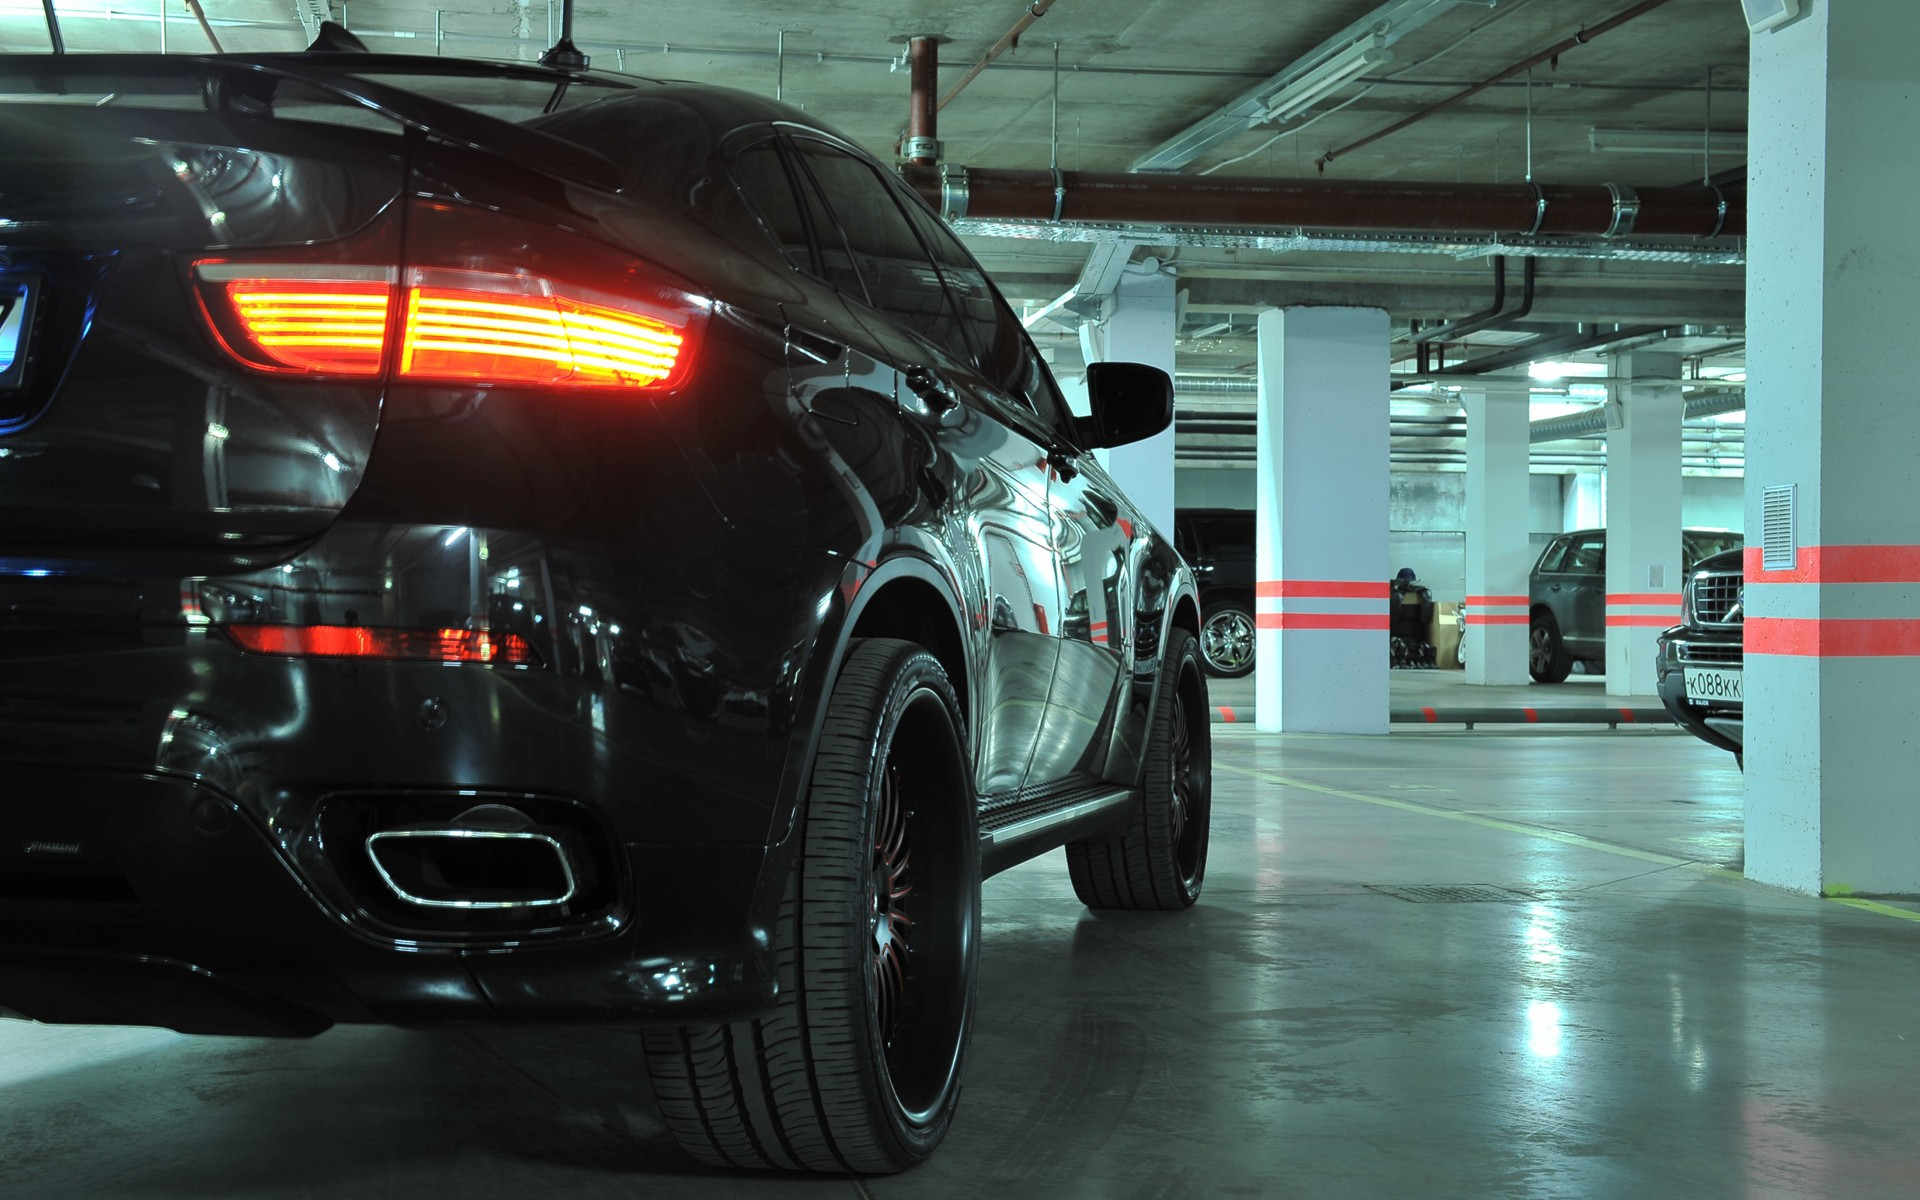 24 Excellent HD Garage Wallpapers